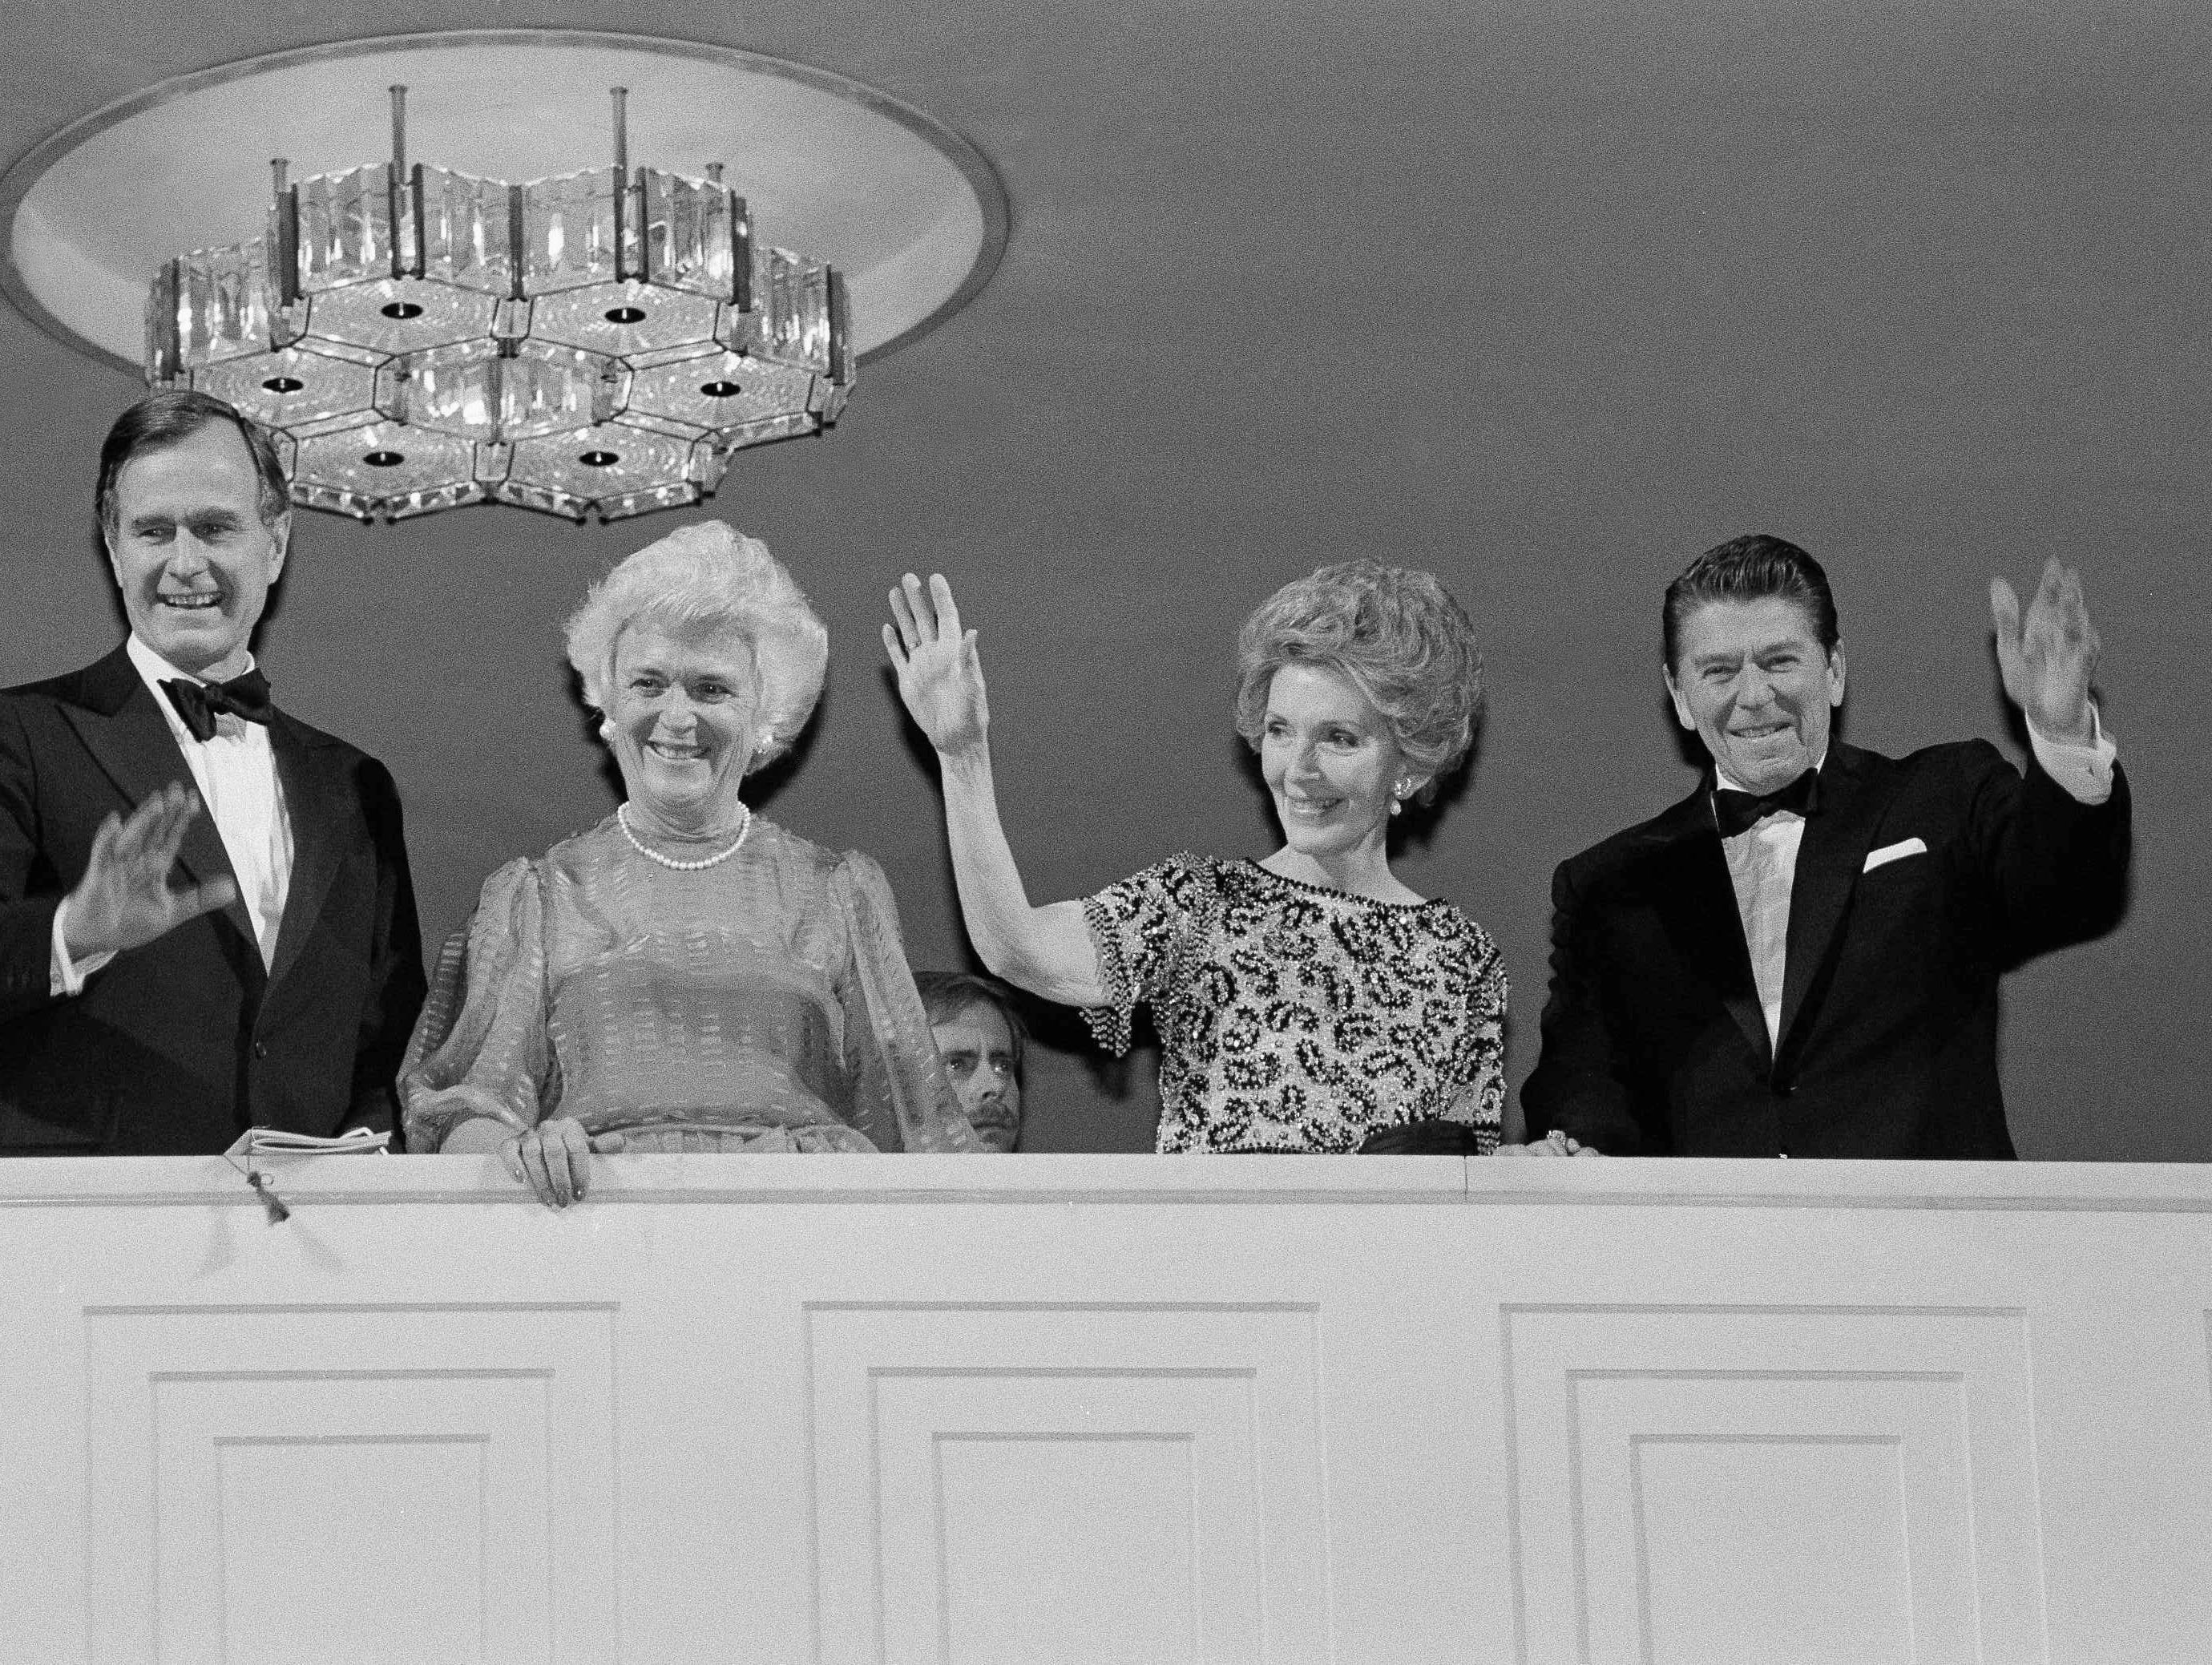 President-elect Ronald Reagan and his wife Nancy wave from the balcony at the Kennedy Center in Washington on Sunday, Jan. 18, 1981, where they attended a concert. With the Reagans are Vice President-elect George H.W. Bush, left, and his wife Barbara. (AP Photo)